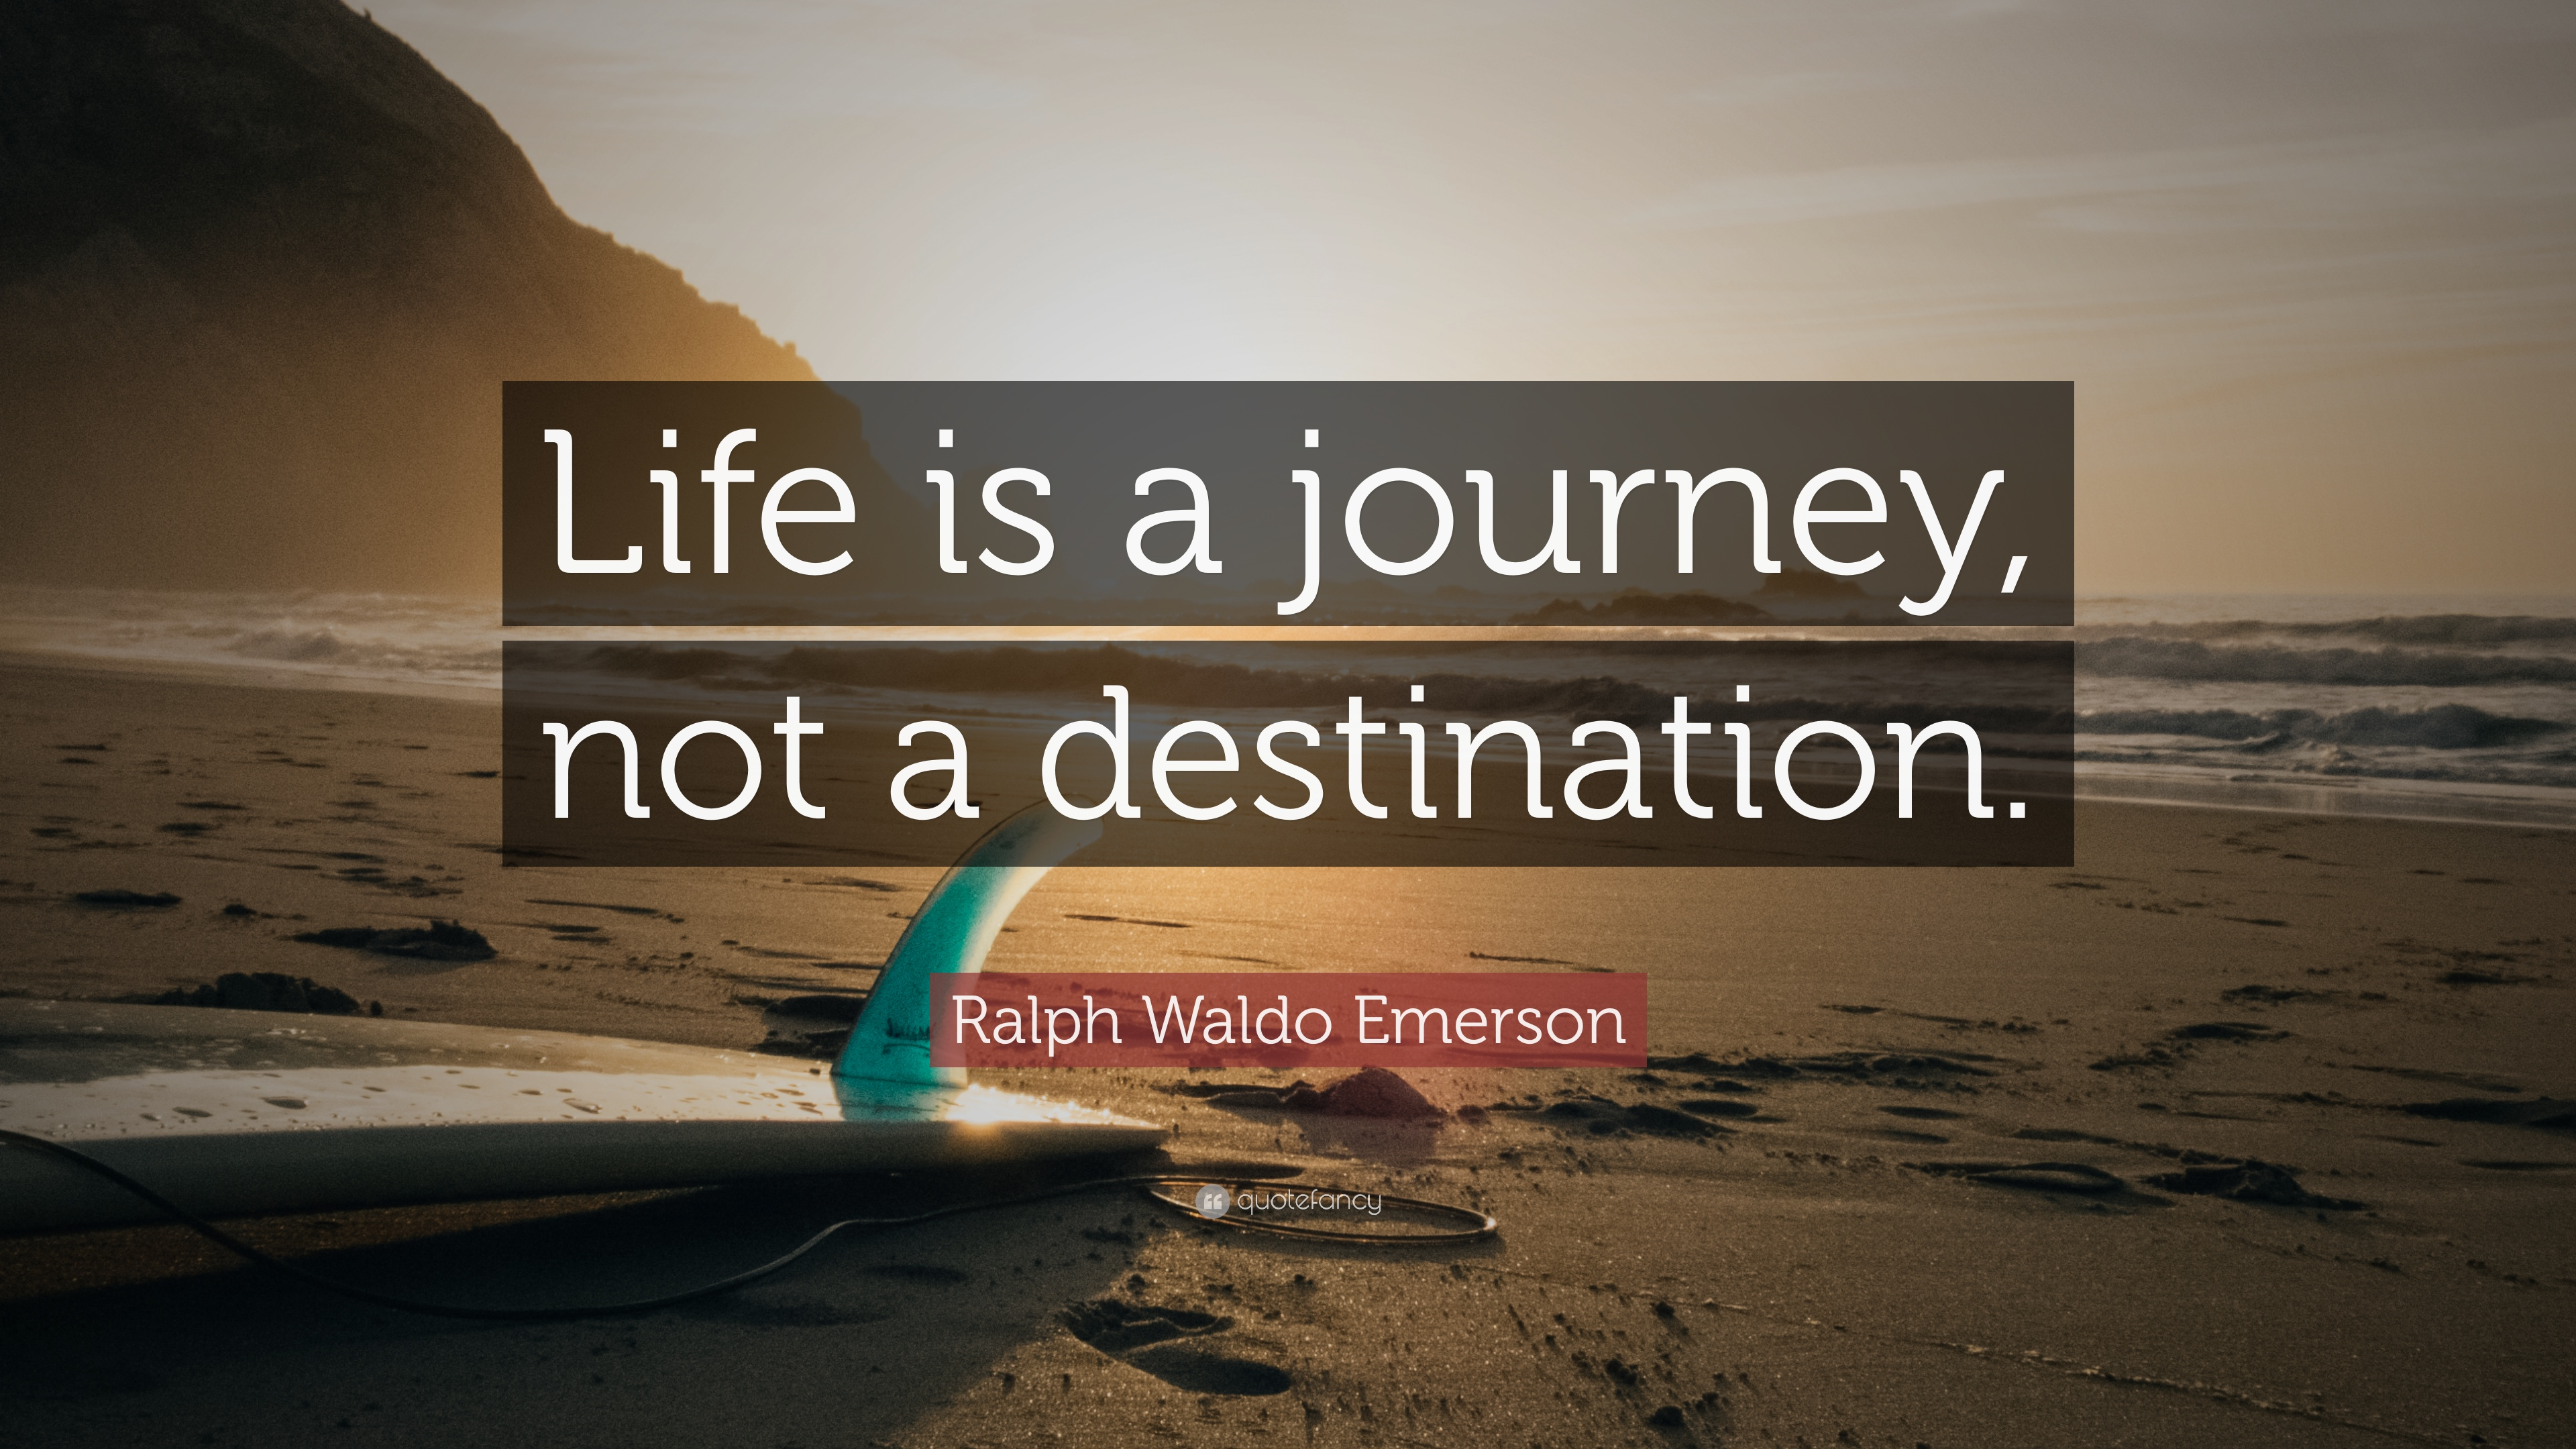 ralph waldo emerson quote life is a journey not a destination ralph waldo emerson quote life is a journey not a destination